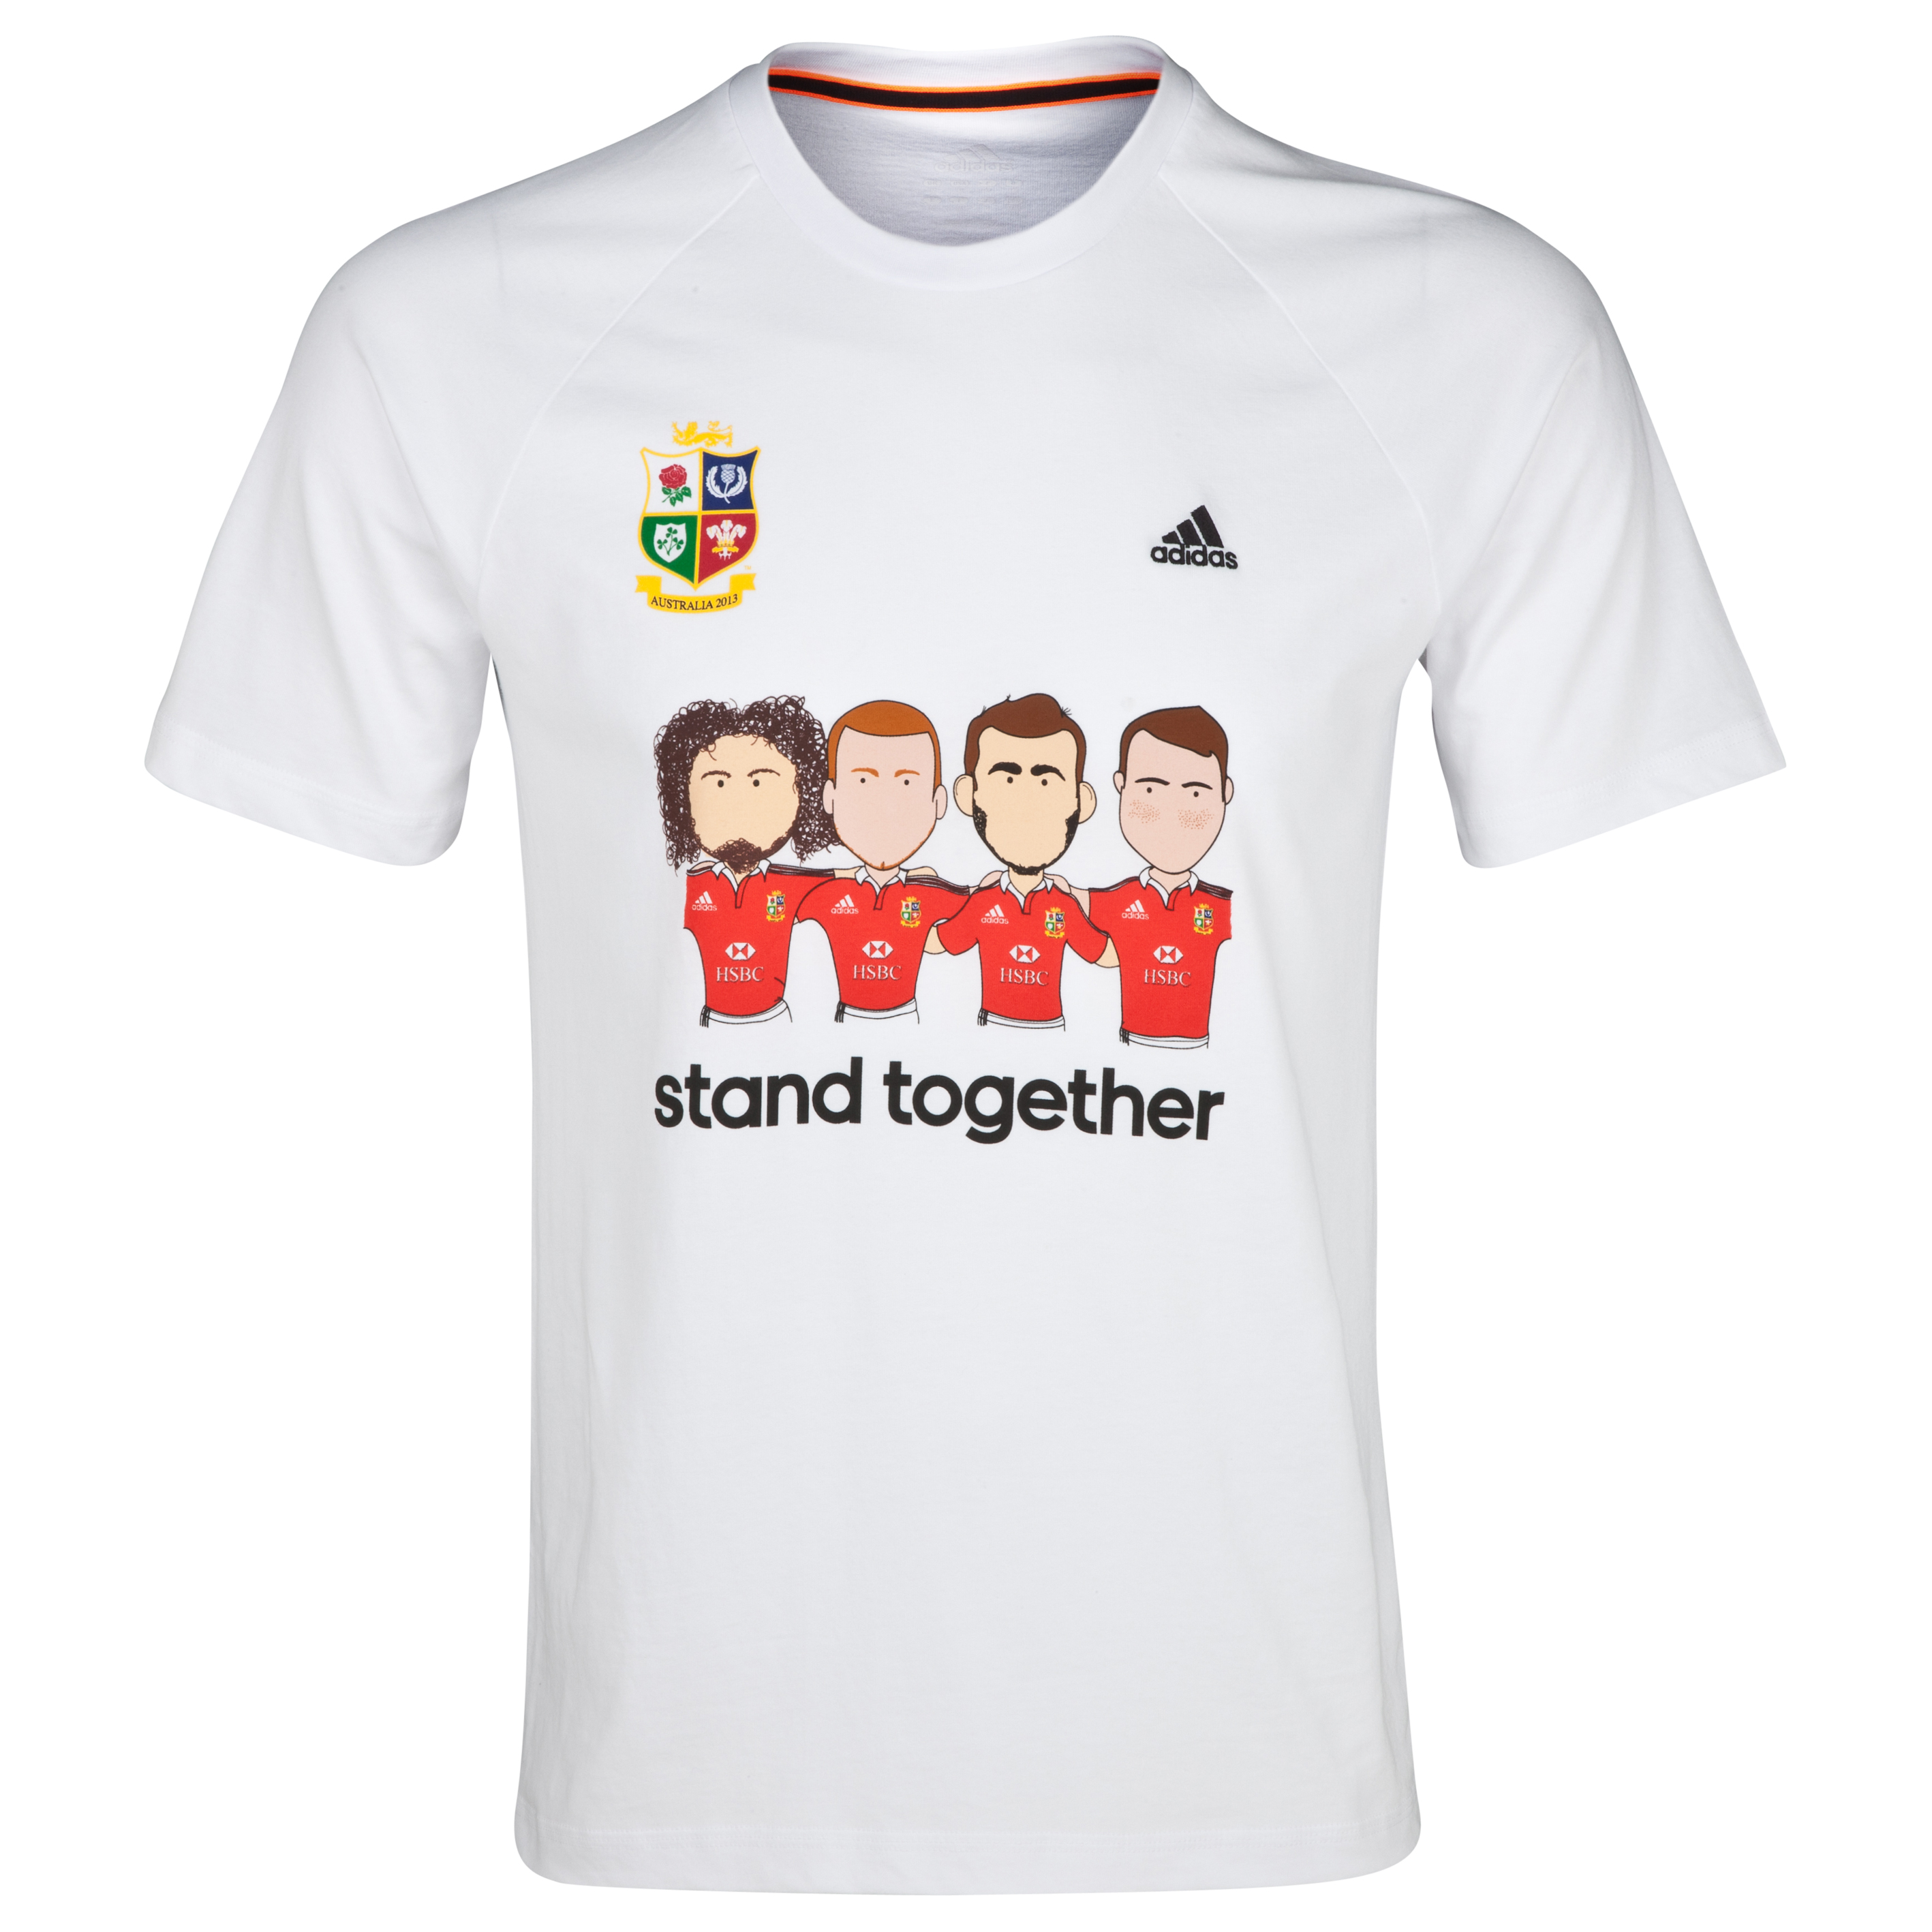 British & Irish Lions adidas Campaign T-Shirt White